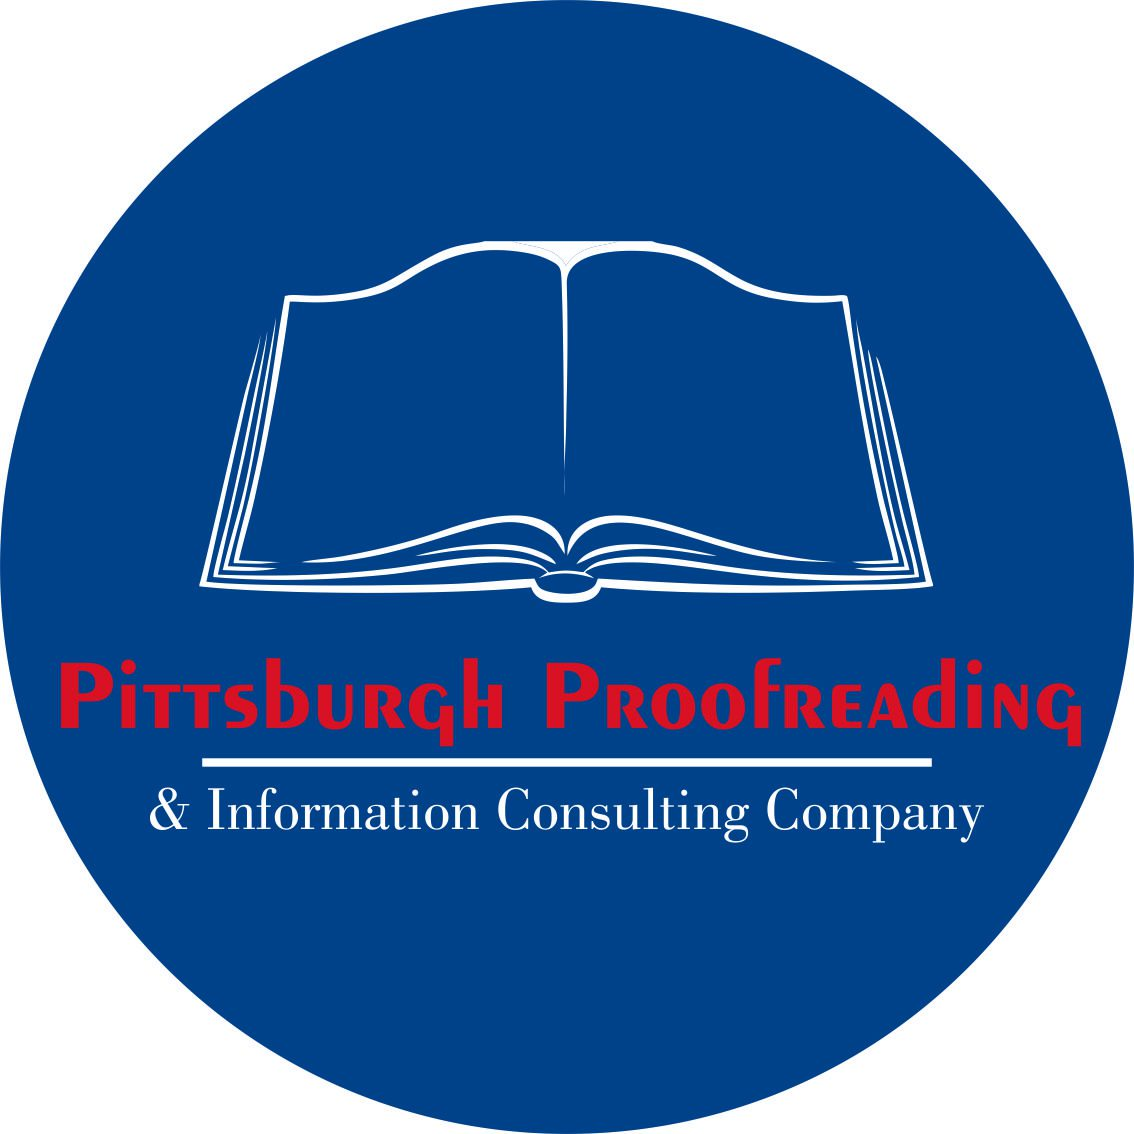 Pittsburgh Proofreading & Information Consulting Company